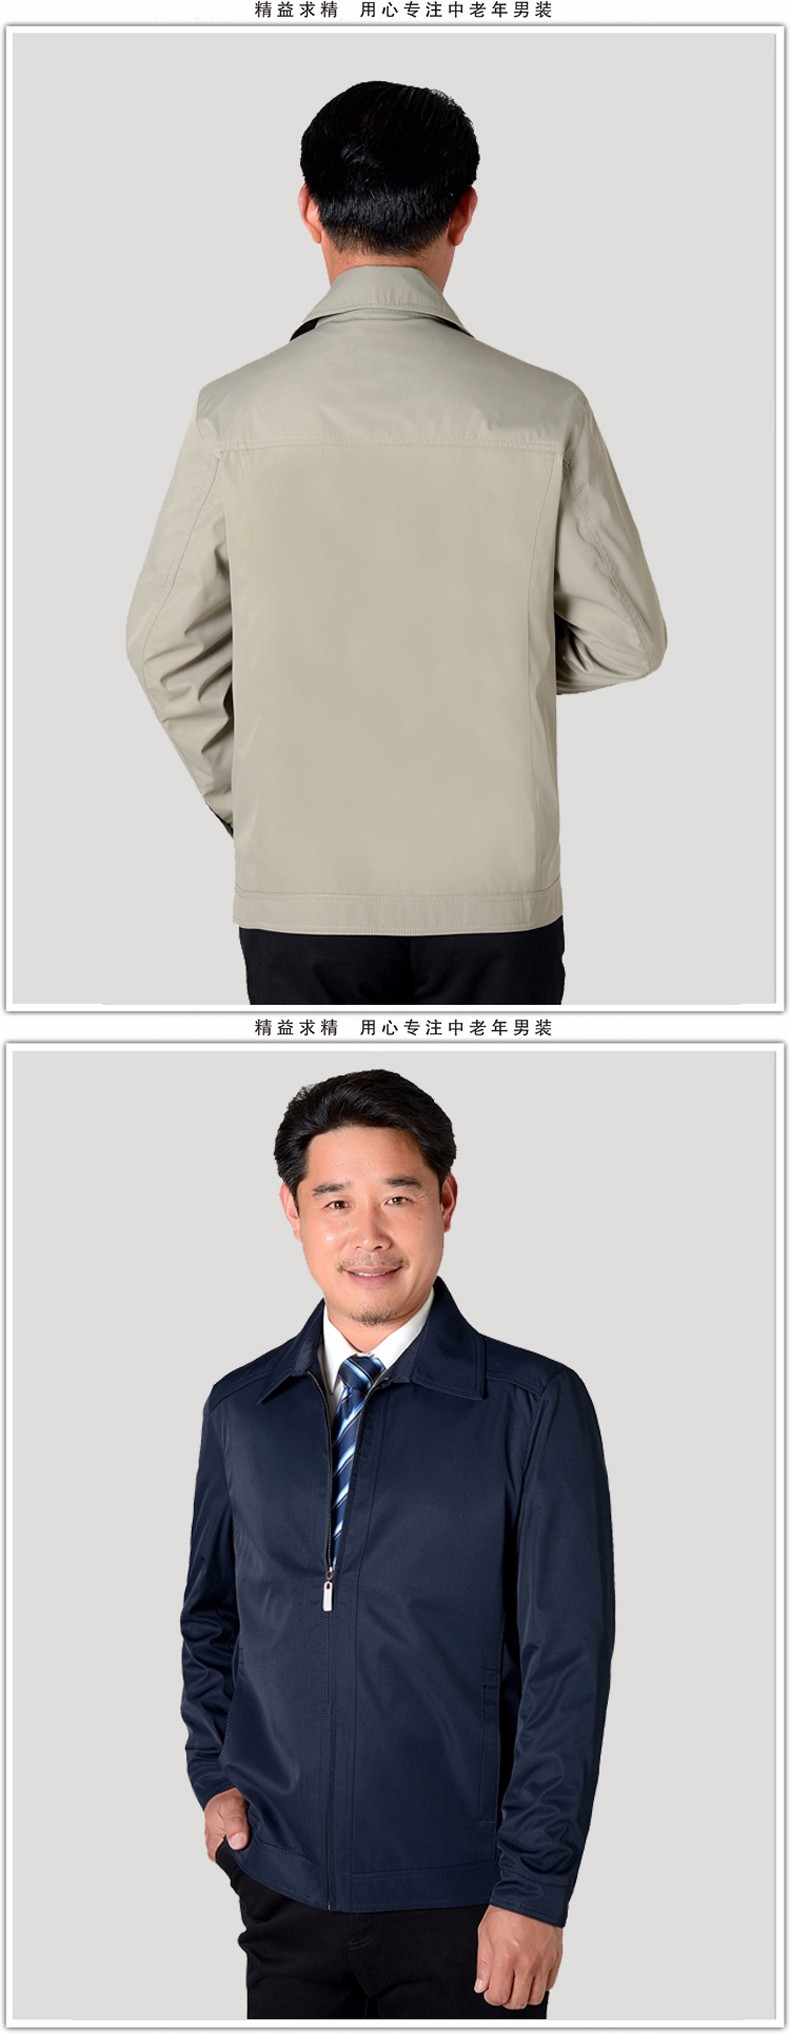 Middle Aged Men Casual Lightweight Jackets Beige Blue Coat For Mans Autumn Spring Turn Down Collar Jacket Father Garment (6)